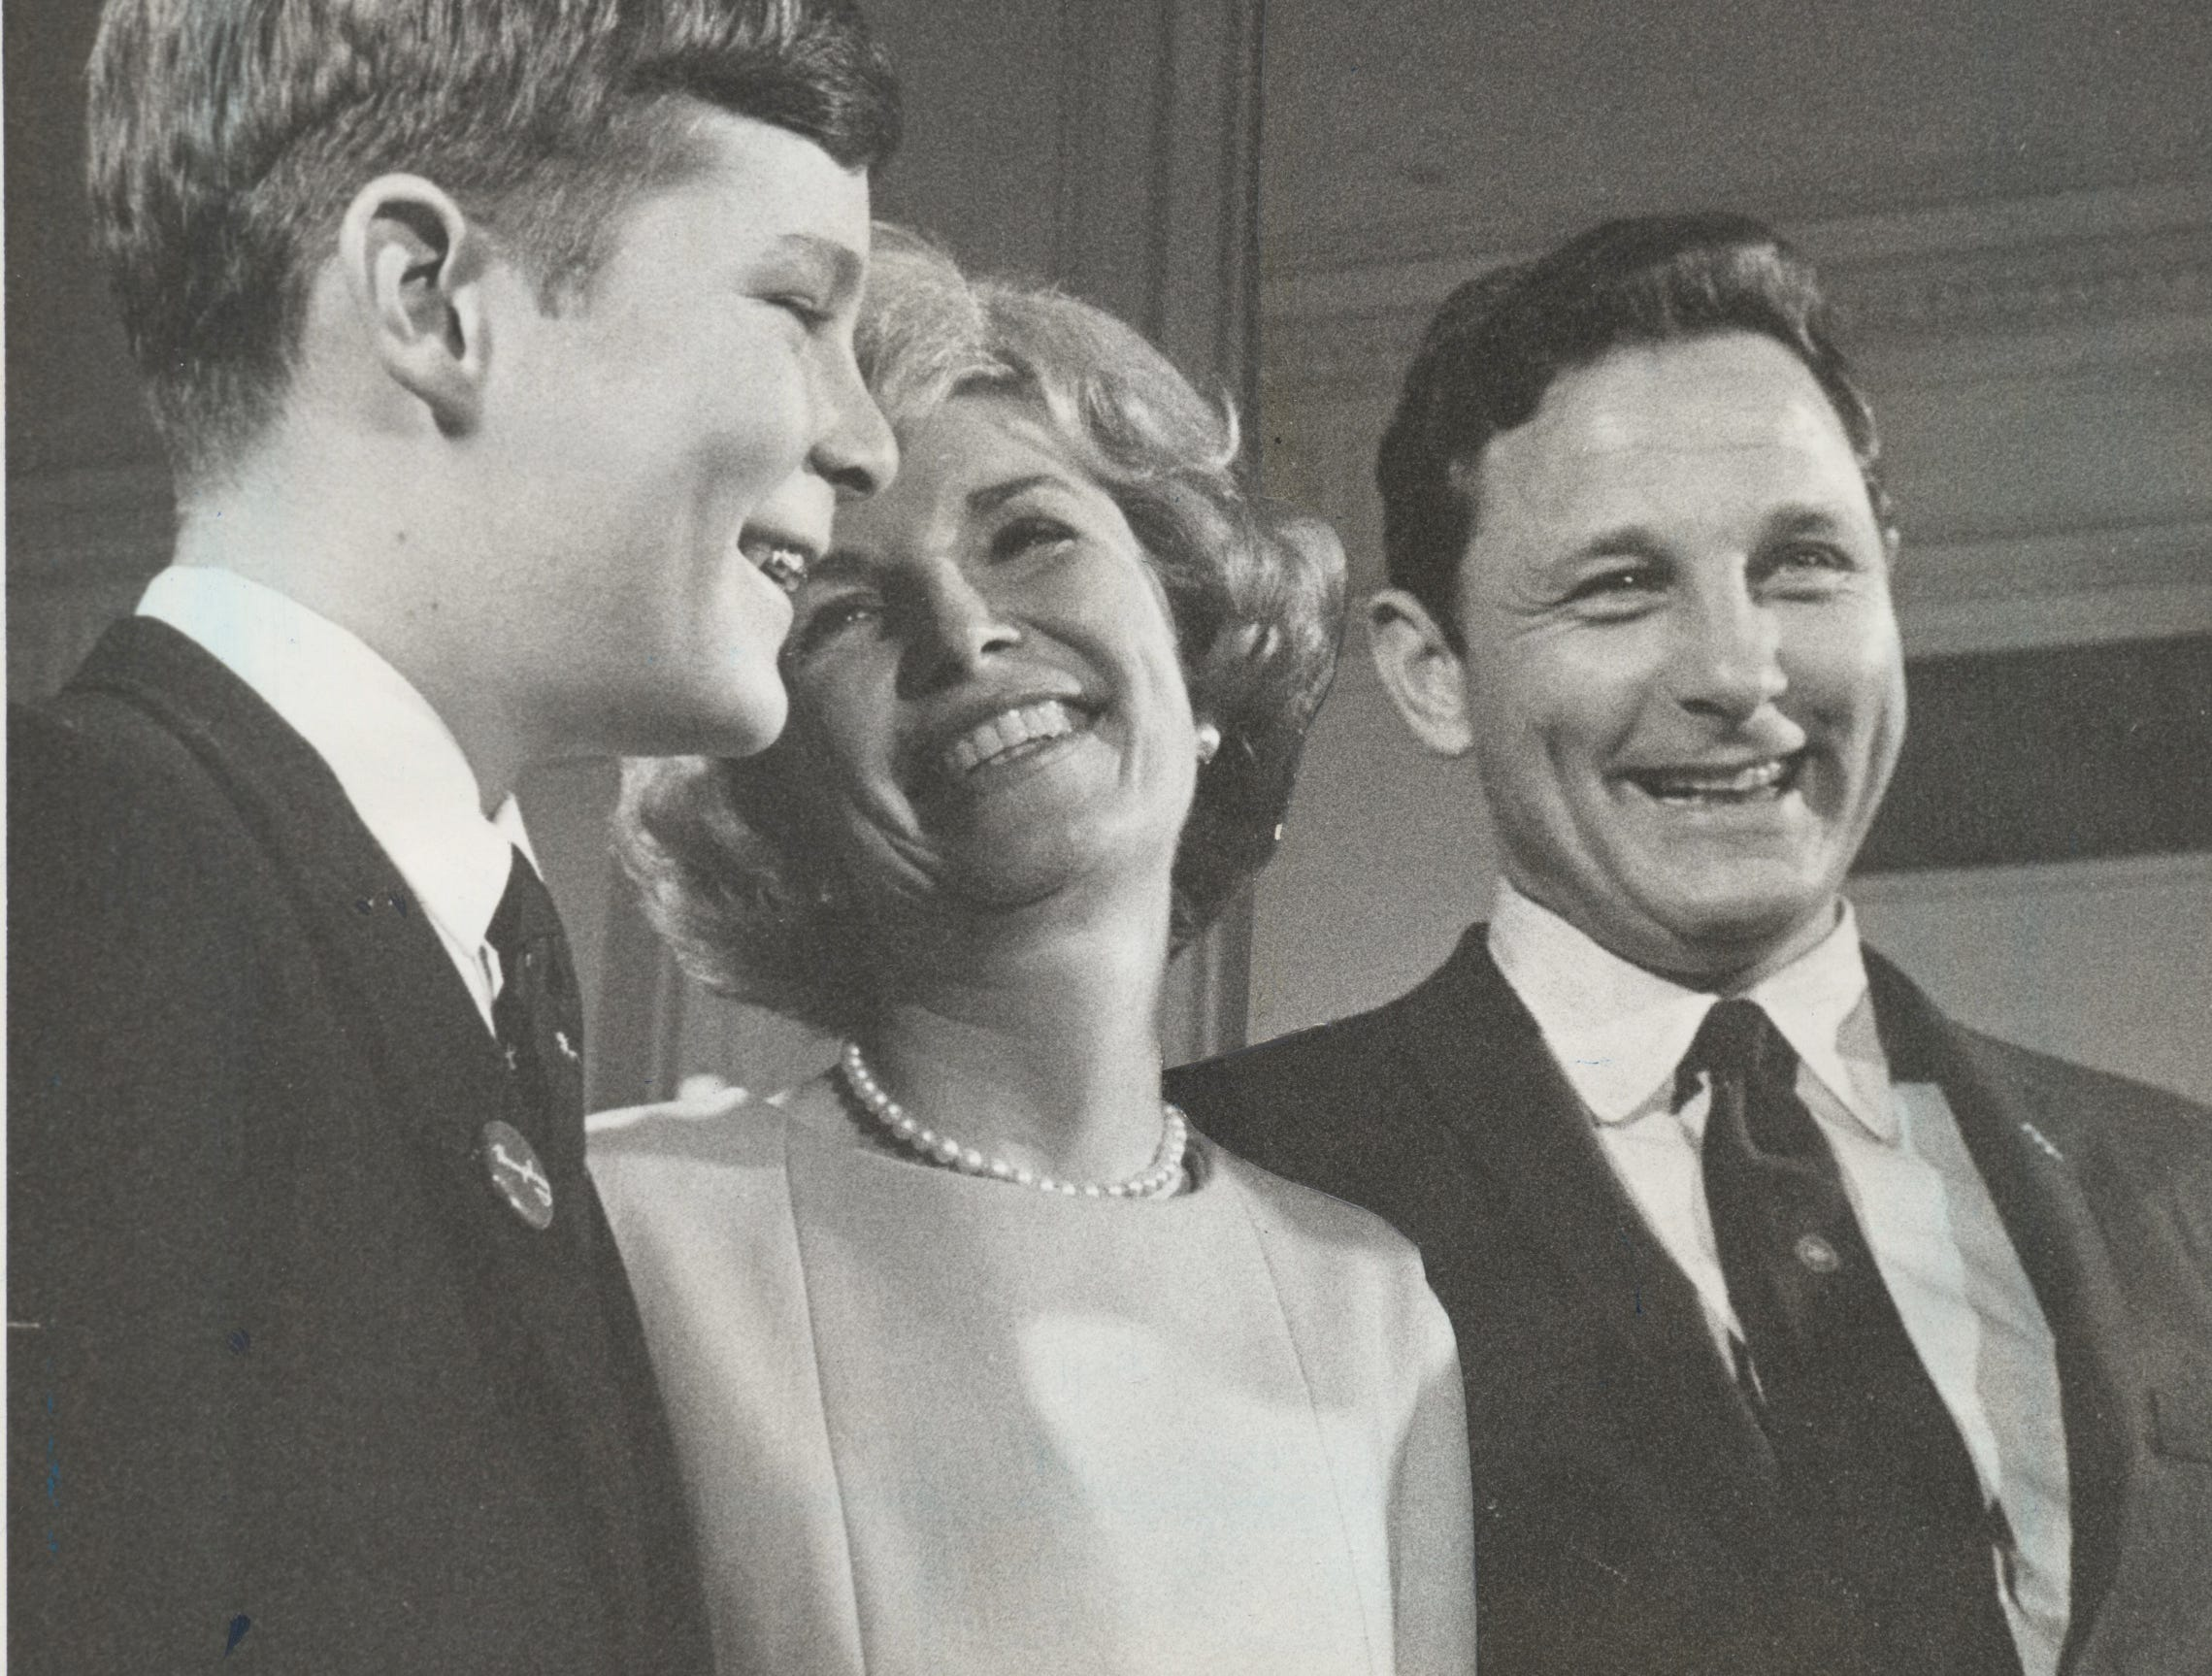 Good humor abounds in the Birch Bayh family following his re-election as U.S. senator. With him are his son, Evan, and his wife, Marvella. (11/06/1968)